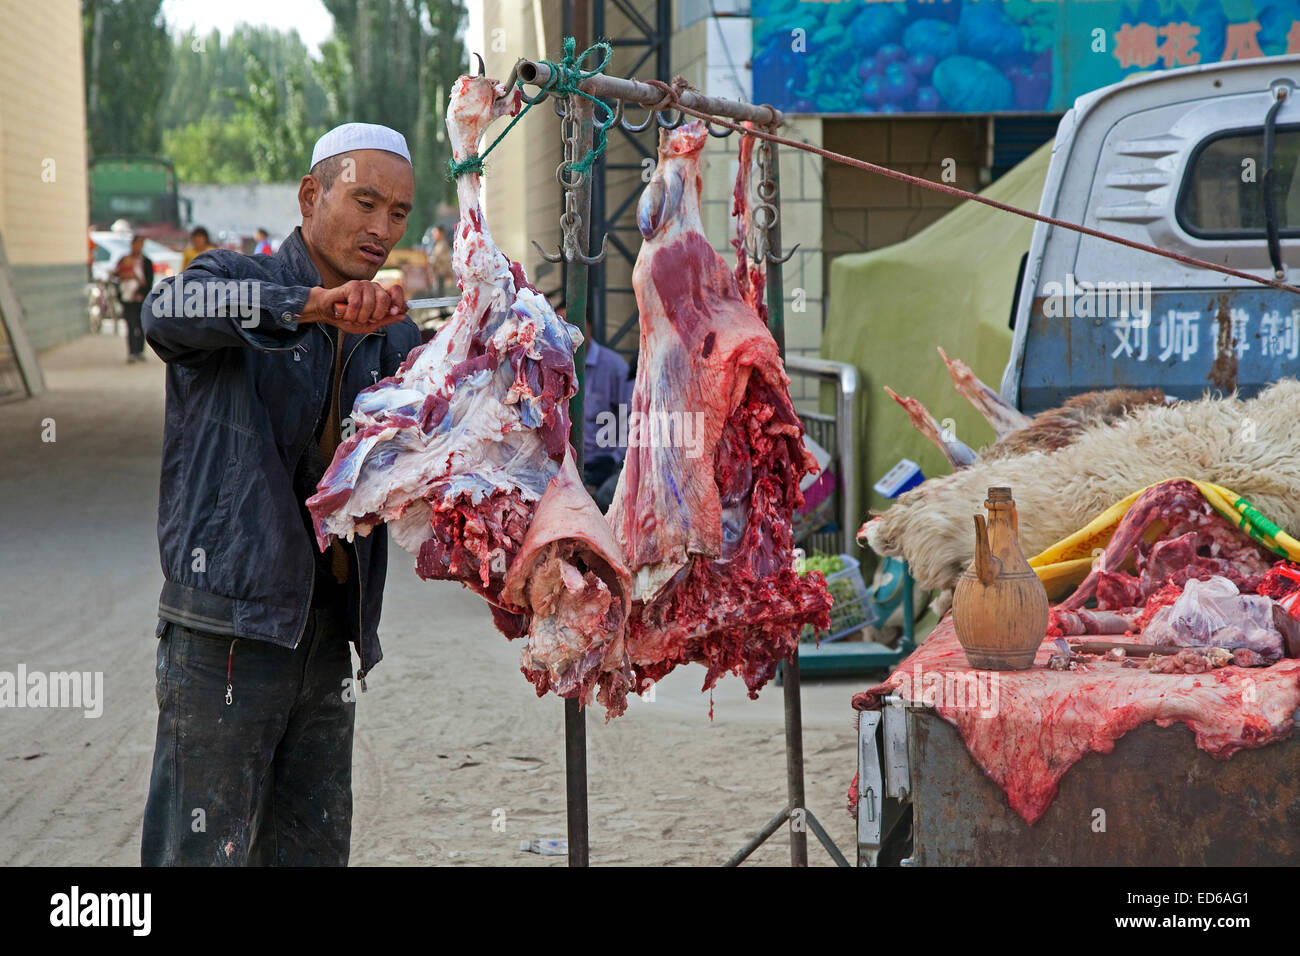 Butcher cutting meat from his pickup truck in the village Waxxari, oasis town in the Taklamakan Desert, Xinjiang - Stock Image